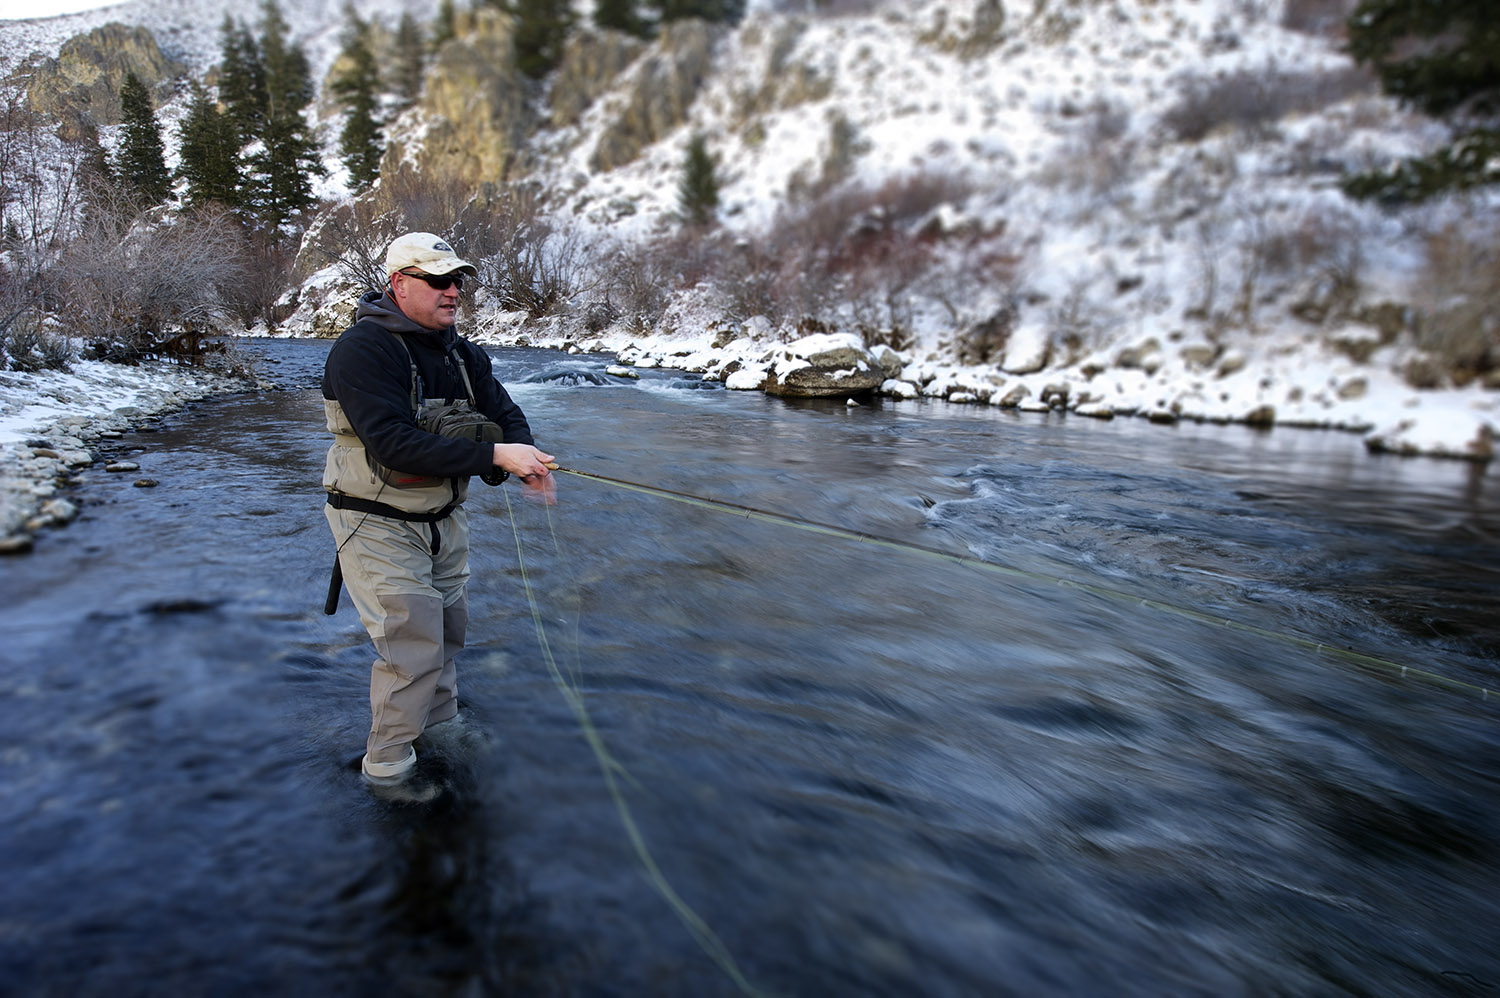 A winter morning on a side channel of the South Fork of The Boise River.